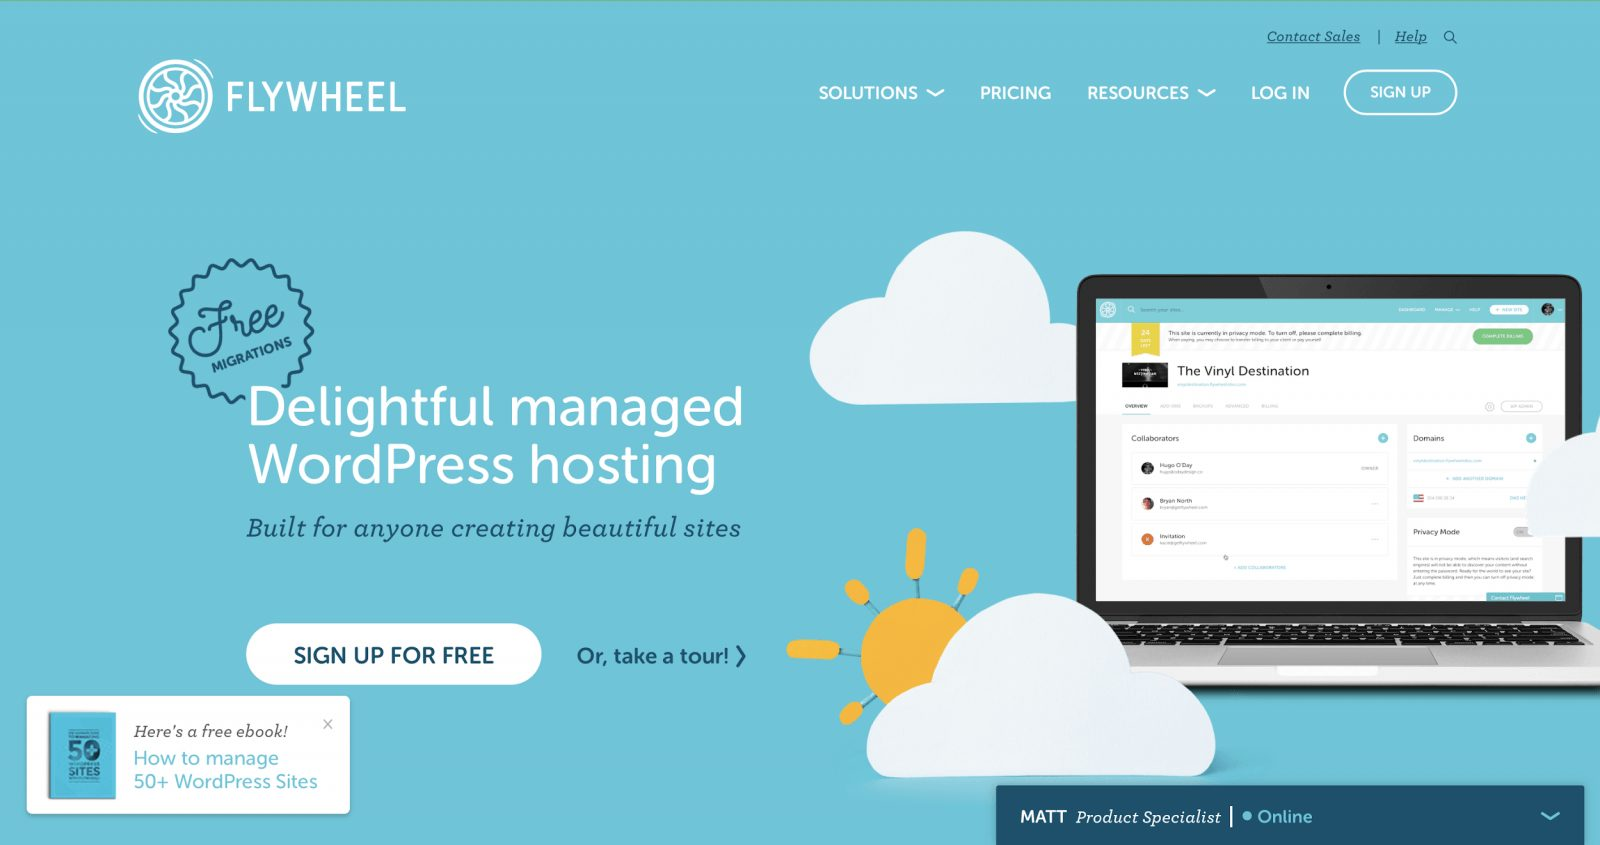 flywheel home page